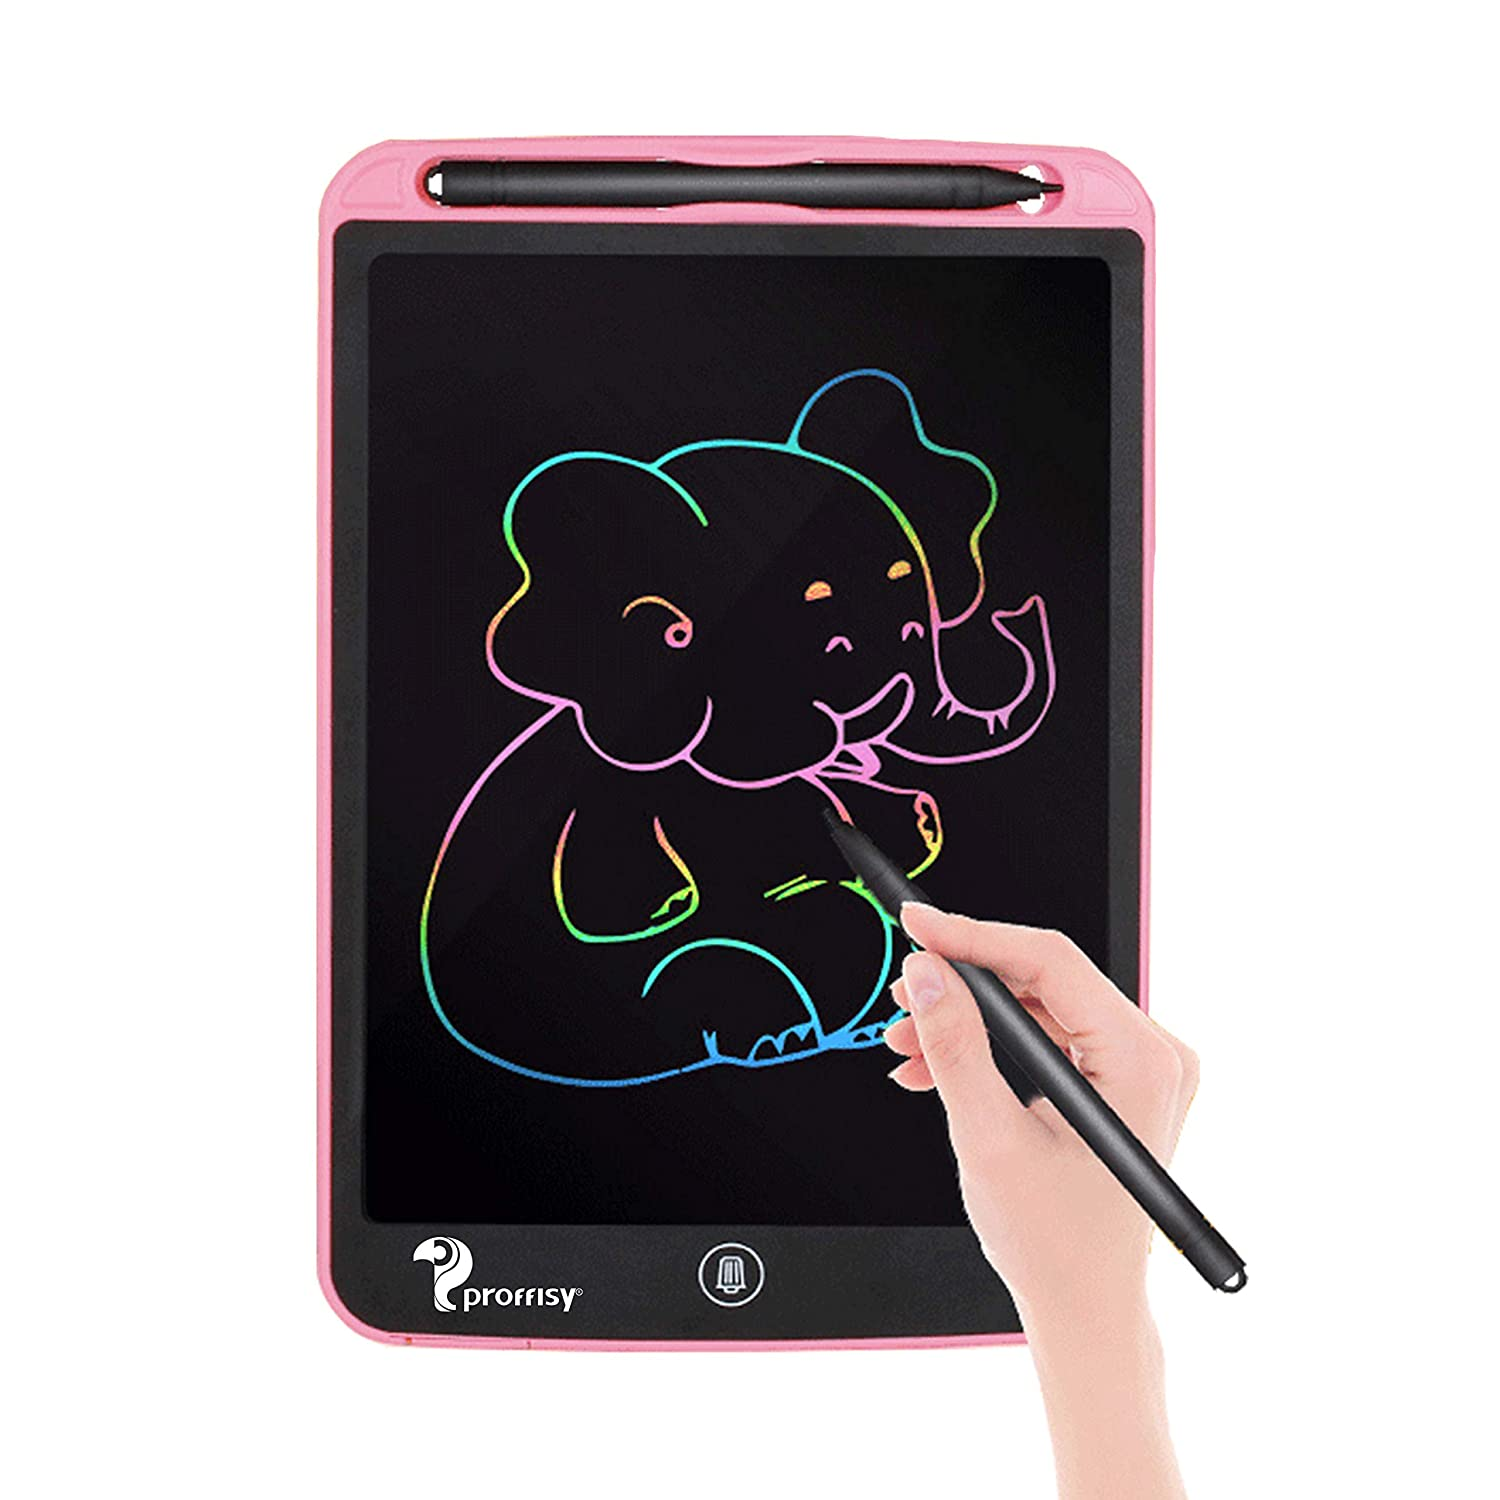 Proffisy Colourful Screen LCD Writing Tablet Pad 8.5 Inch Color Line E-Writing Electronic Board and Scribble MeMO Notes